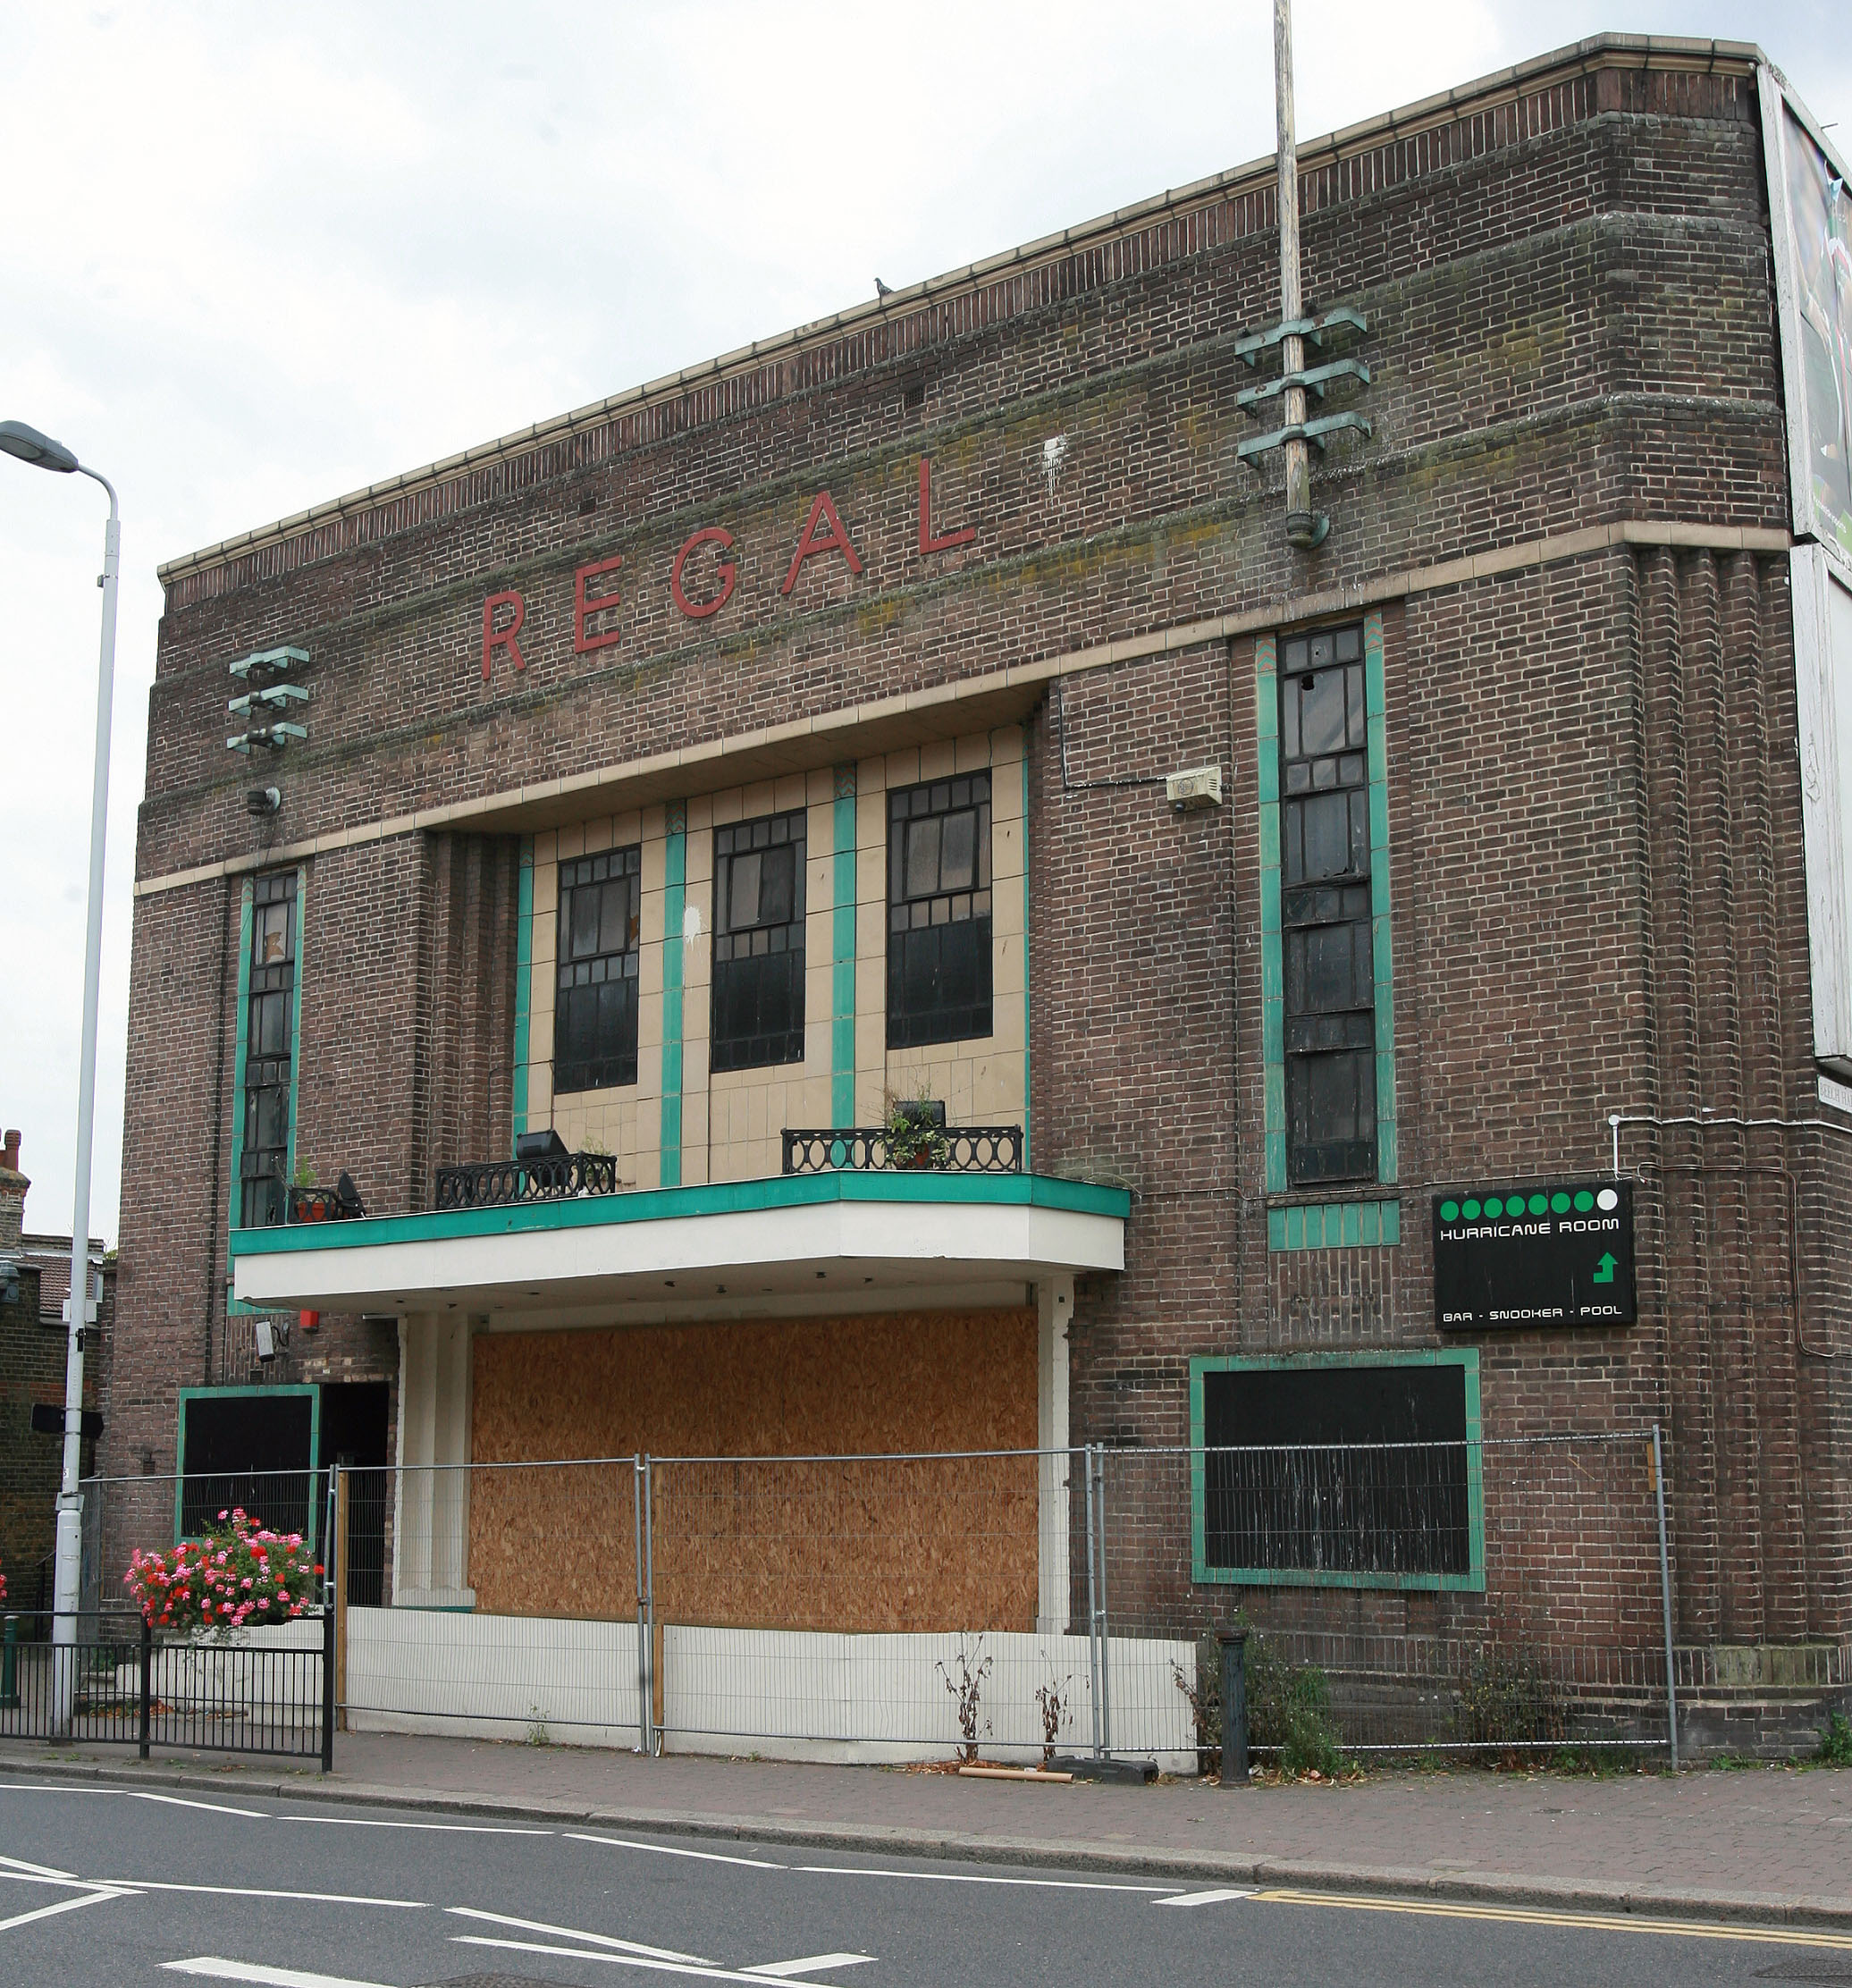 Plans to transform the old Regal in Highams Park into a Curzon arthouse cinema (From East London and West Essex Guardian Series)